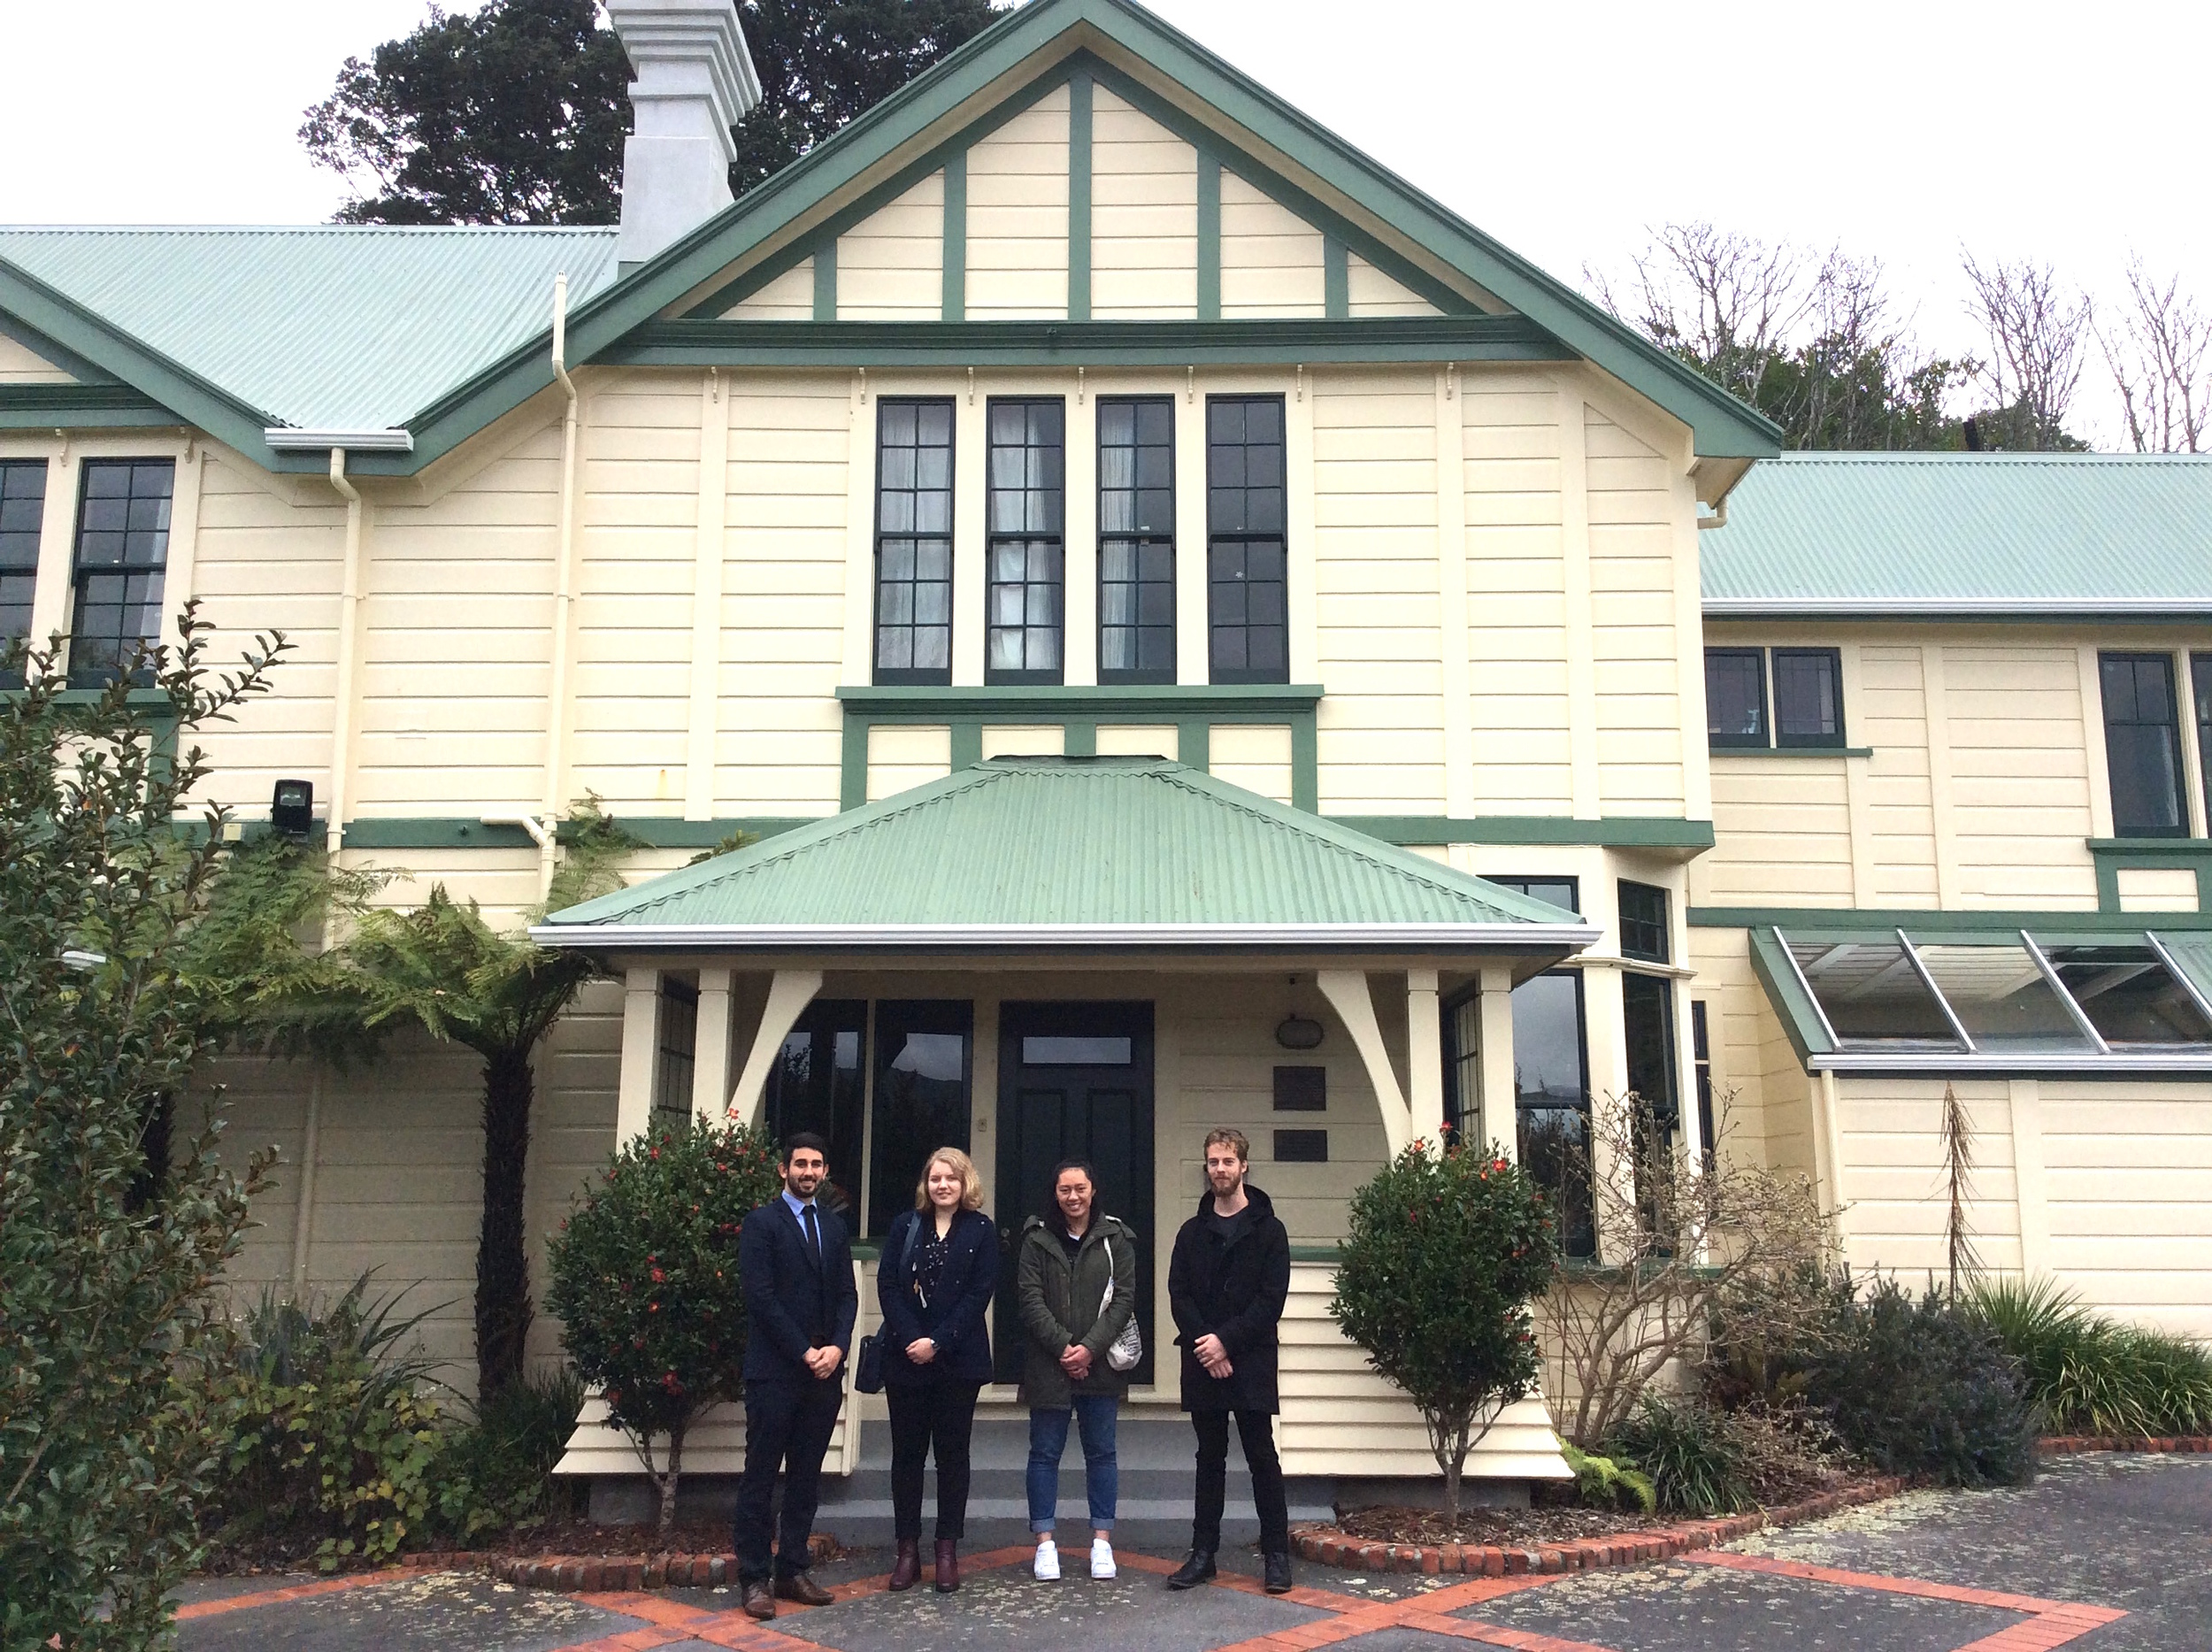 Tour of Hutt Minoh House in Normandale